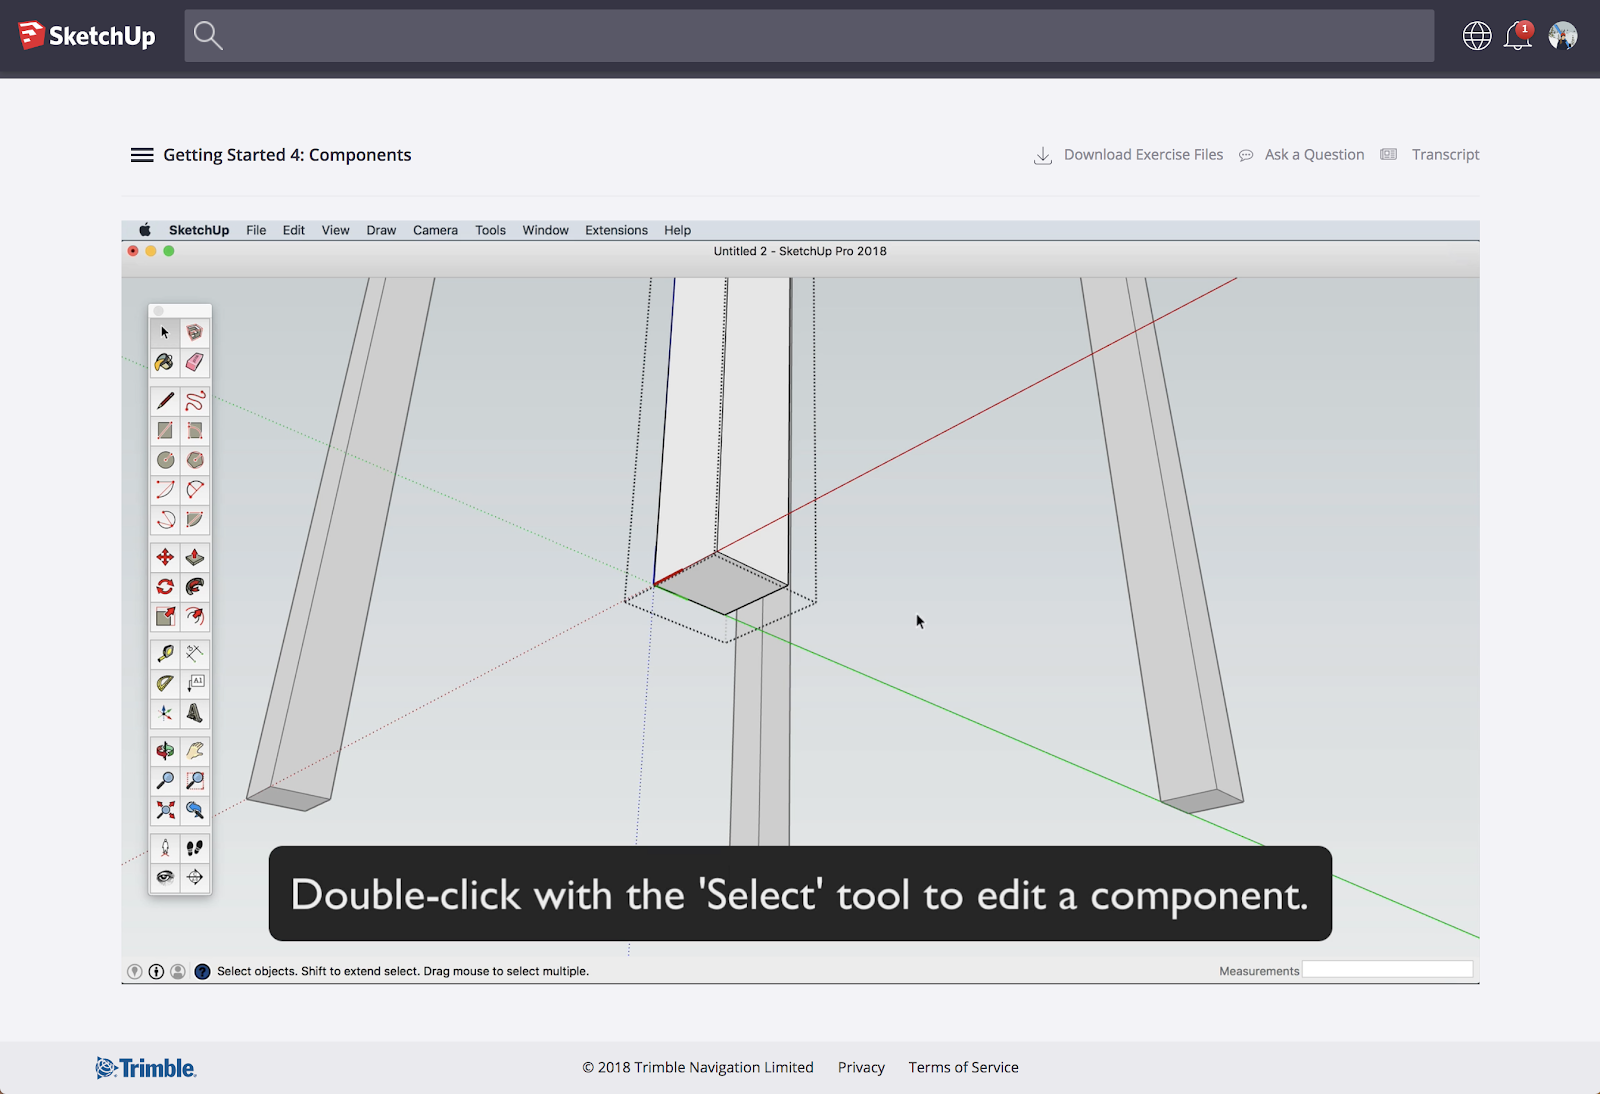 What's New in SketchUp Pro 2019? - BIM Solutions, News and